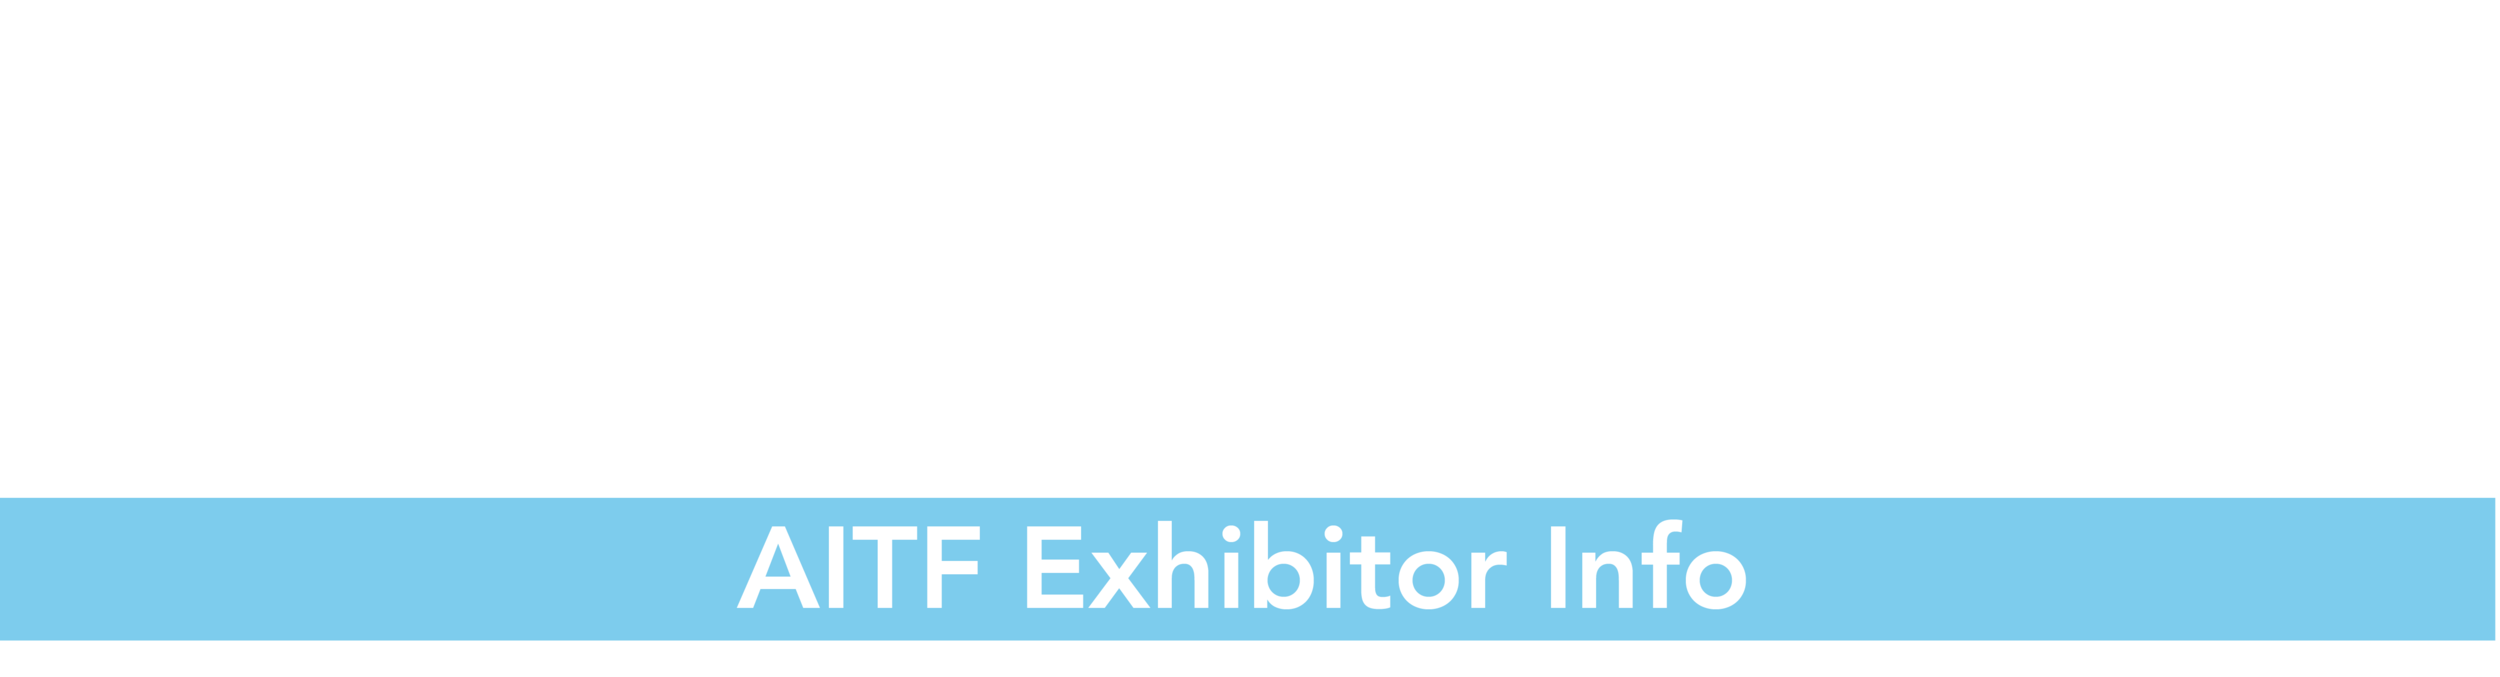 Exhibitor_Info_v001-03.png